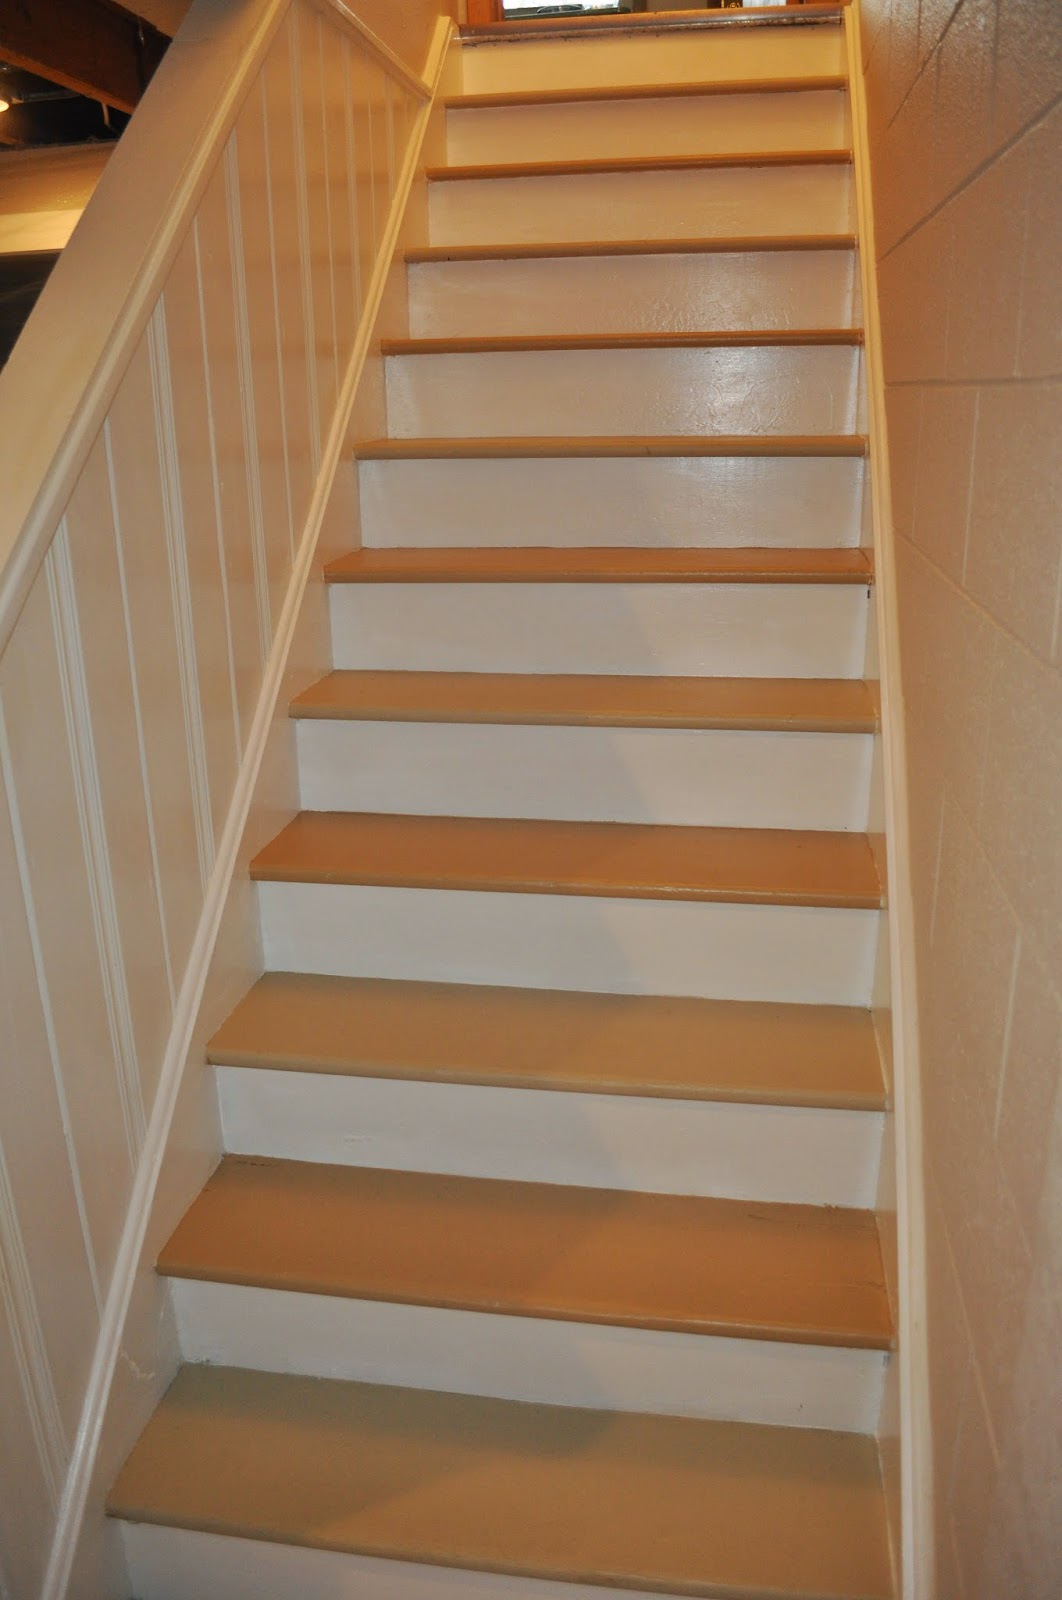 runner, overstock, runner installation, diy, easy, before and after, project, bostitch, staple gun, carpet pad, one hour, before, after, before and after, basement, hallway, stairs, paint, painting, treads, riser